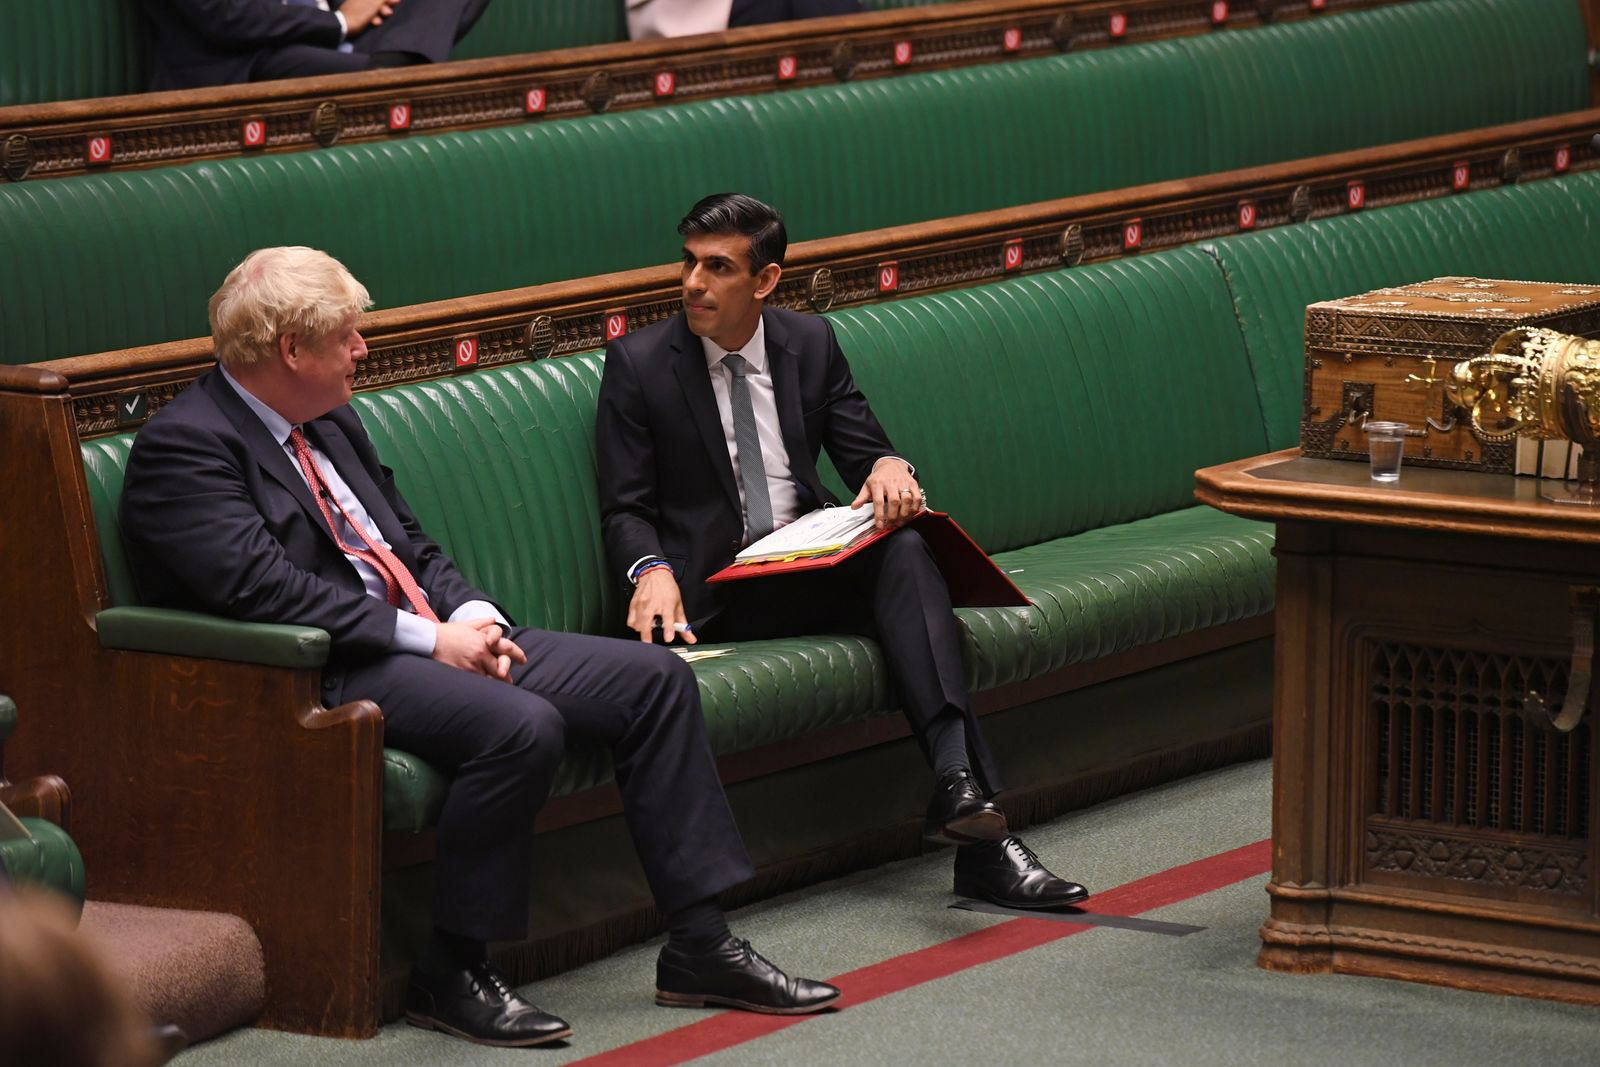 Ministerial statement from the Chancellor of the Exchequer